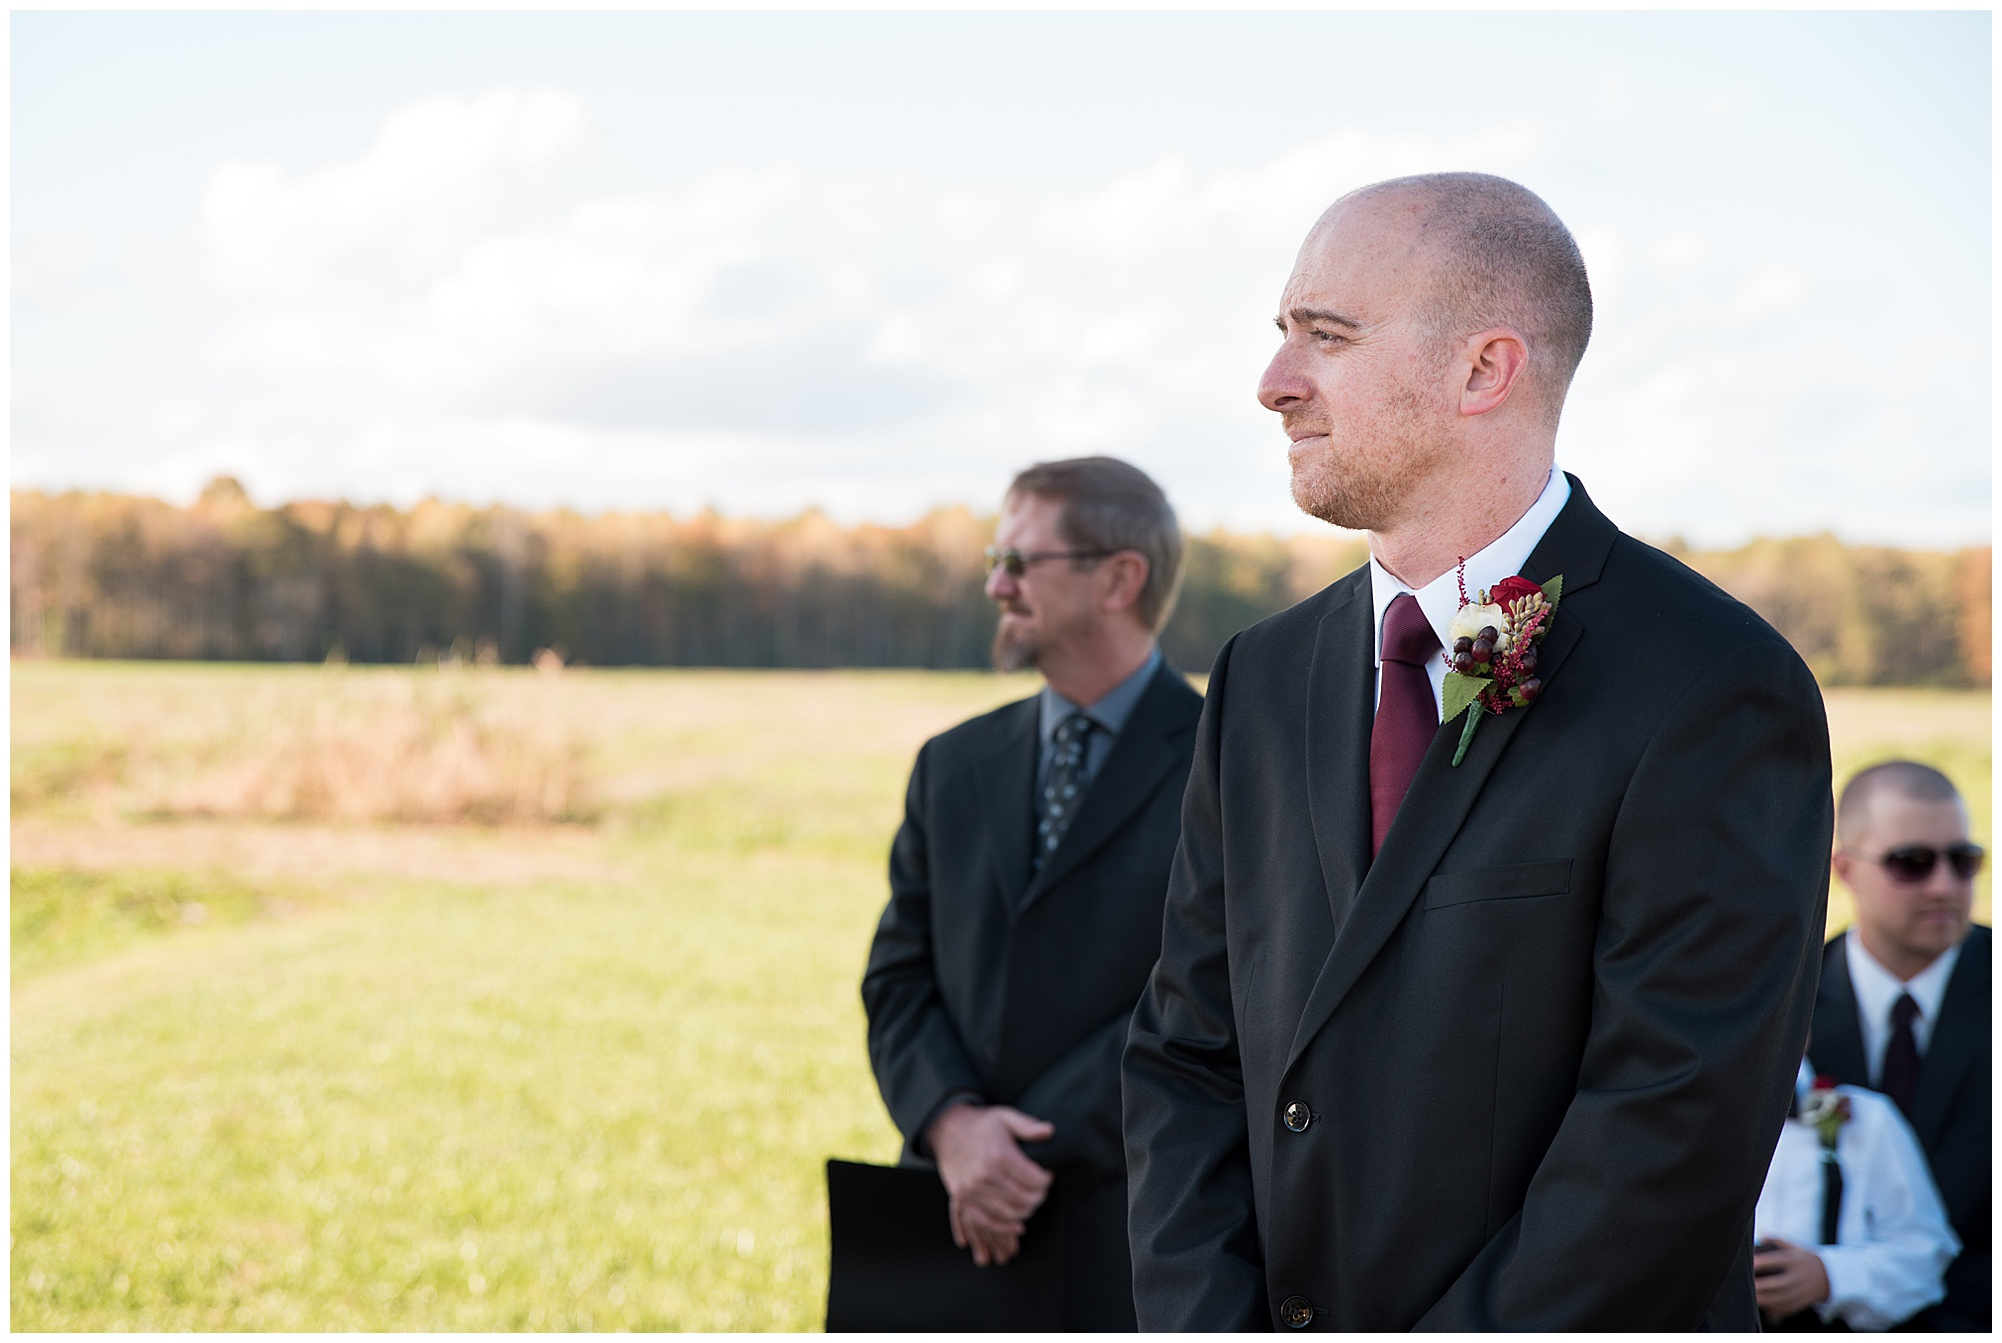 groom waiting for bride at the start of the ceremony. wedding photos outdoors at covered bridge inn in lewes delaware. historic wedding barn venue on the eastern shore. fall wedding in november with rustic decor theme.